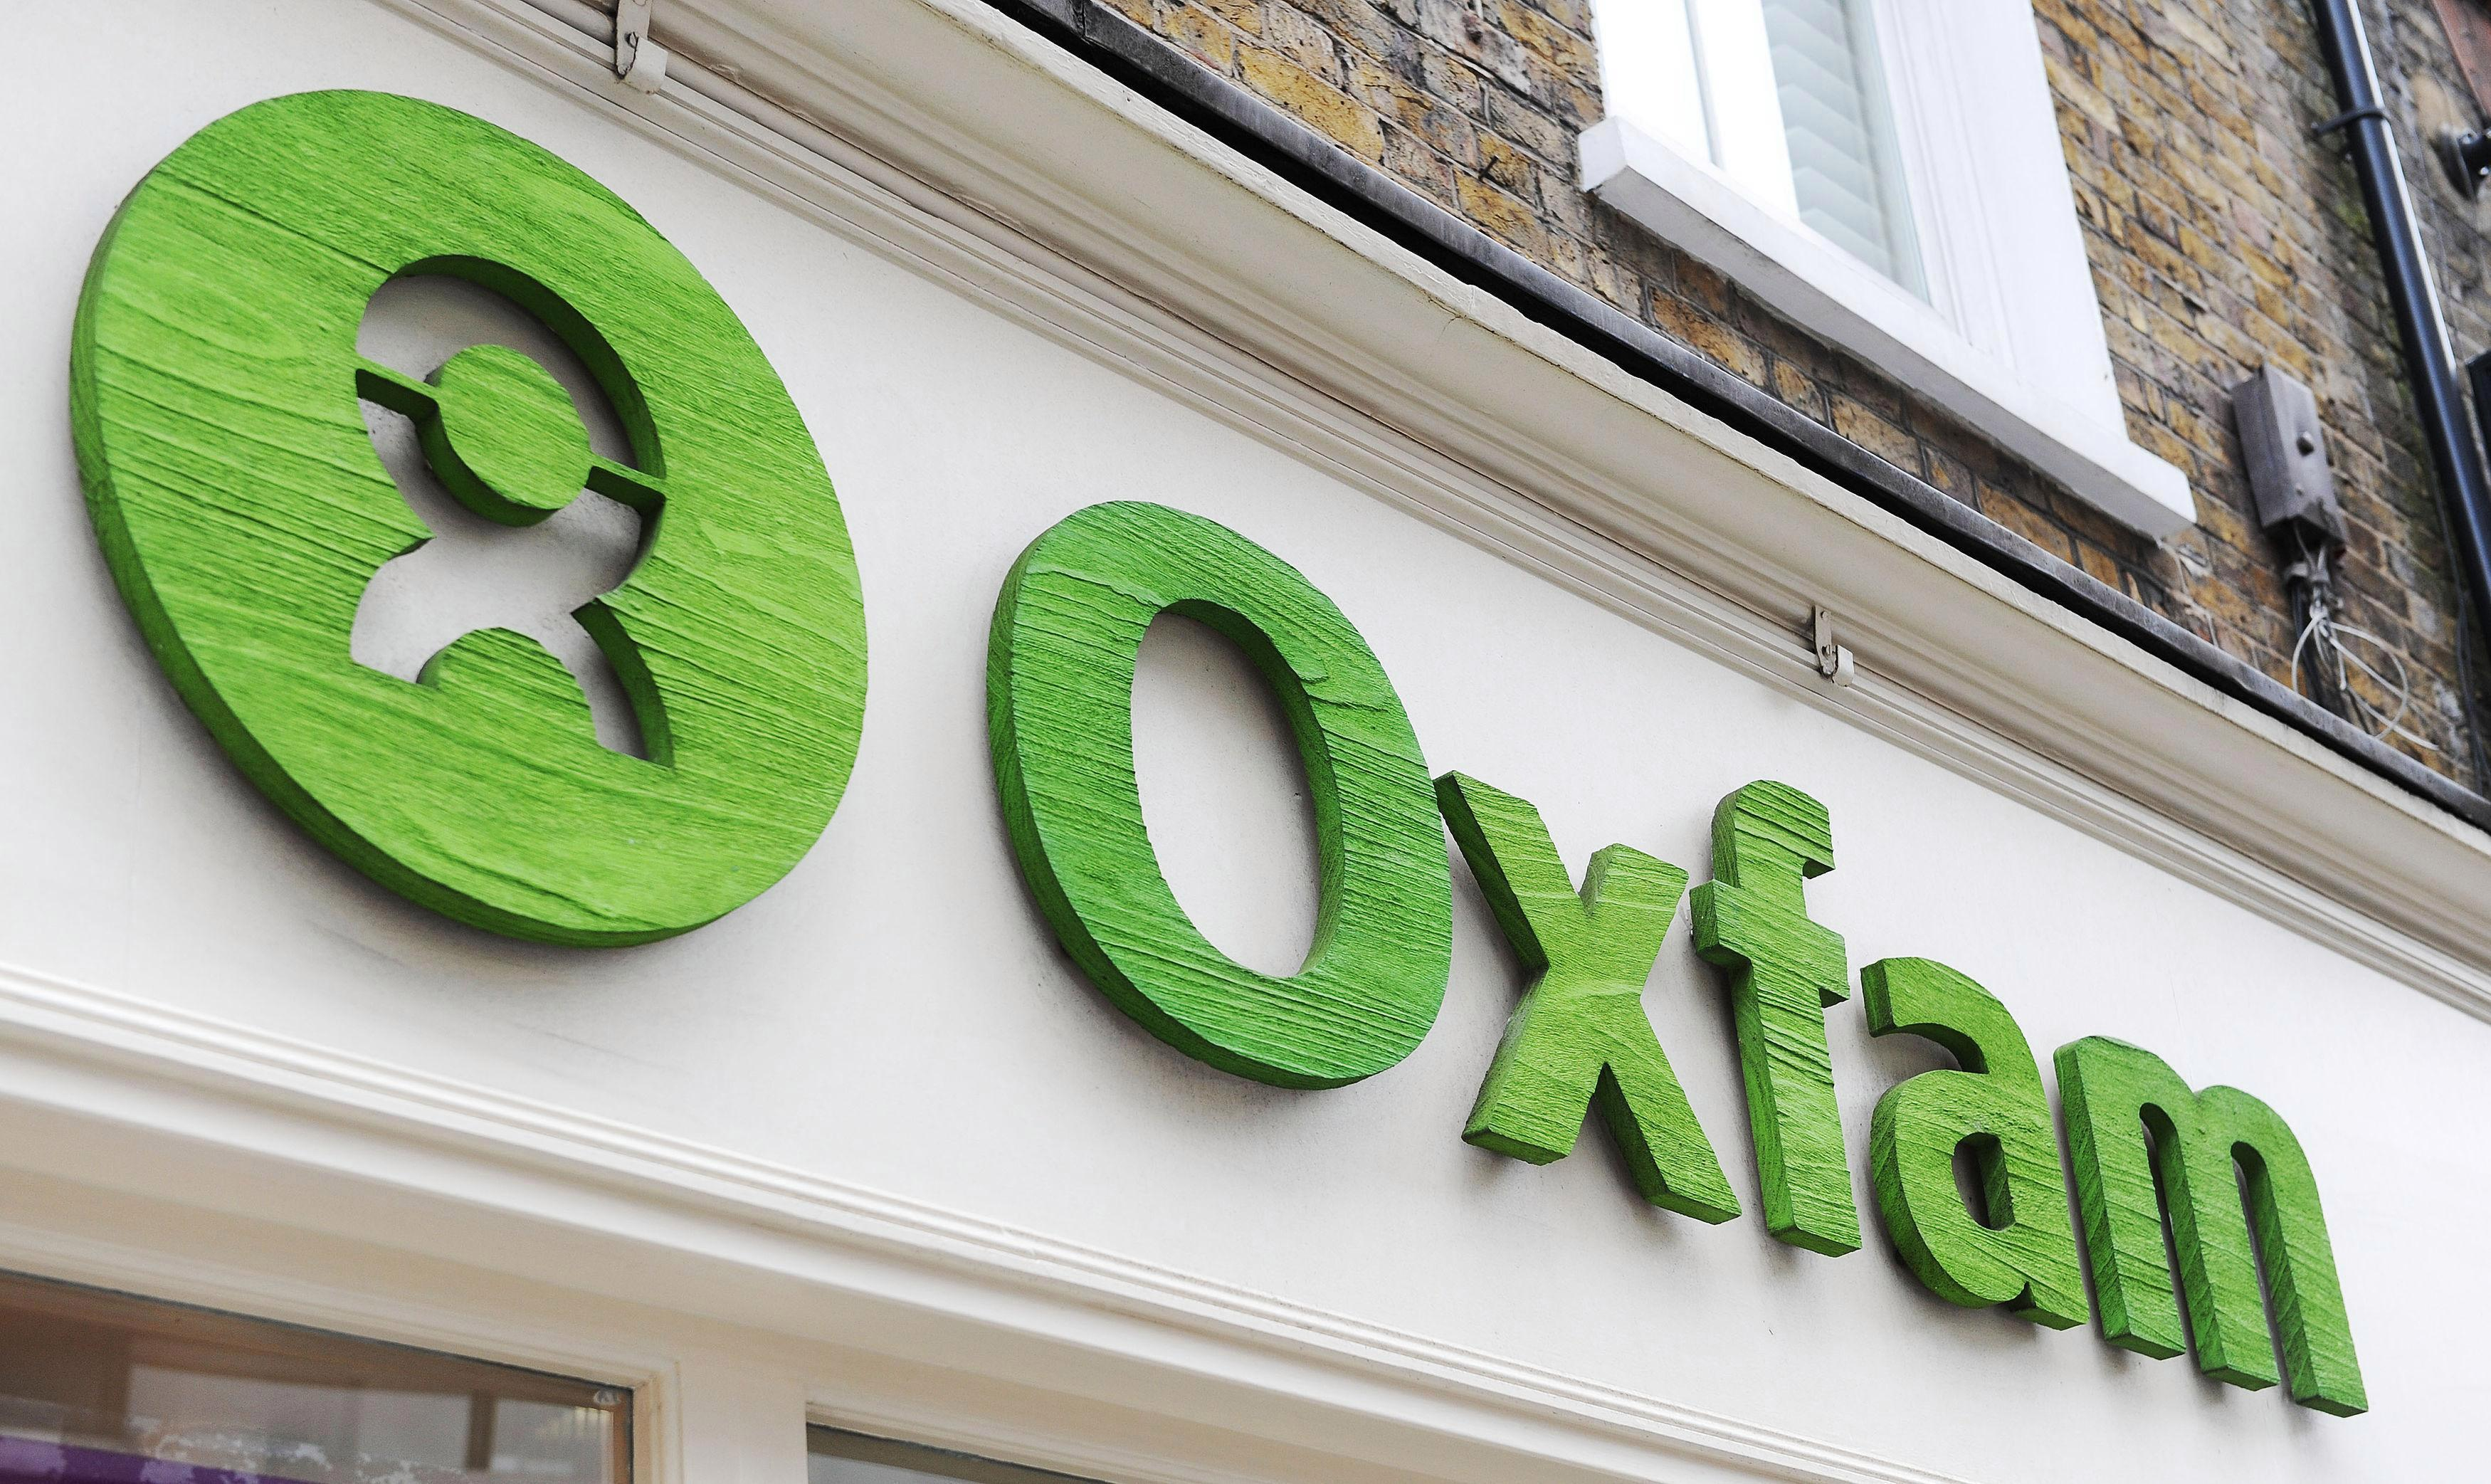 Oxfam scandal intensifies as charity shops 'hit by 123 cases of sexual harassment' and whistleblower claims 'volunteers were not vetted for criminal records'